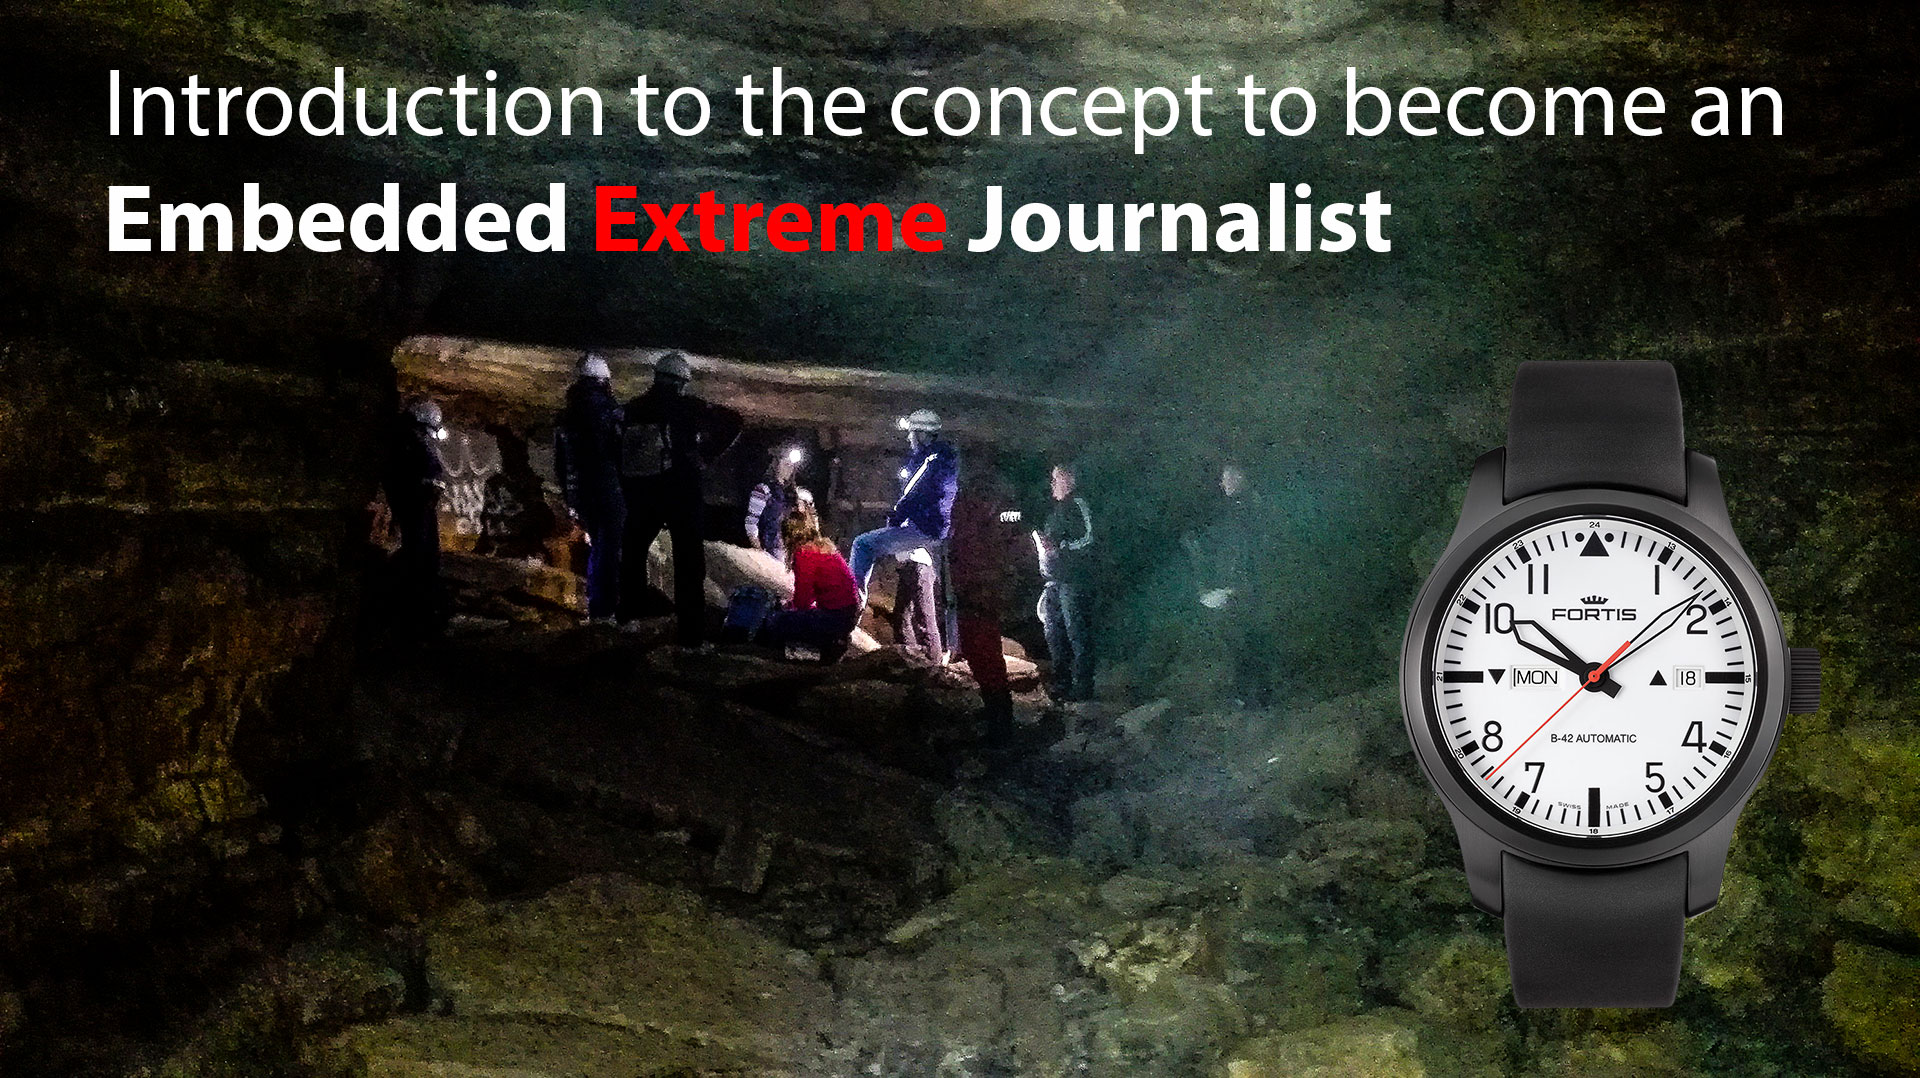 1920 WORLD'S FIRST: EMBEDDED EXTREME JOURNALISTS